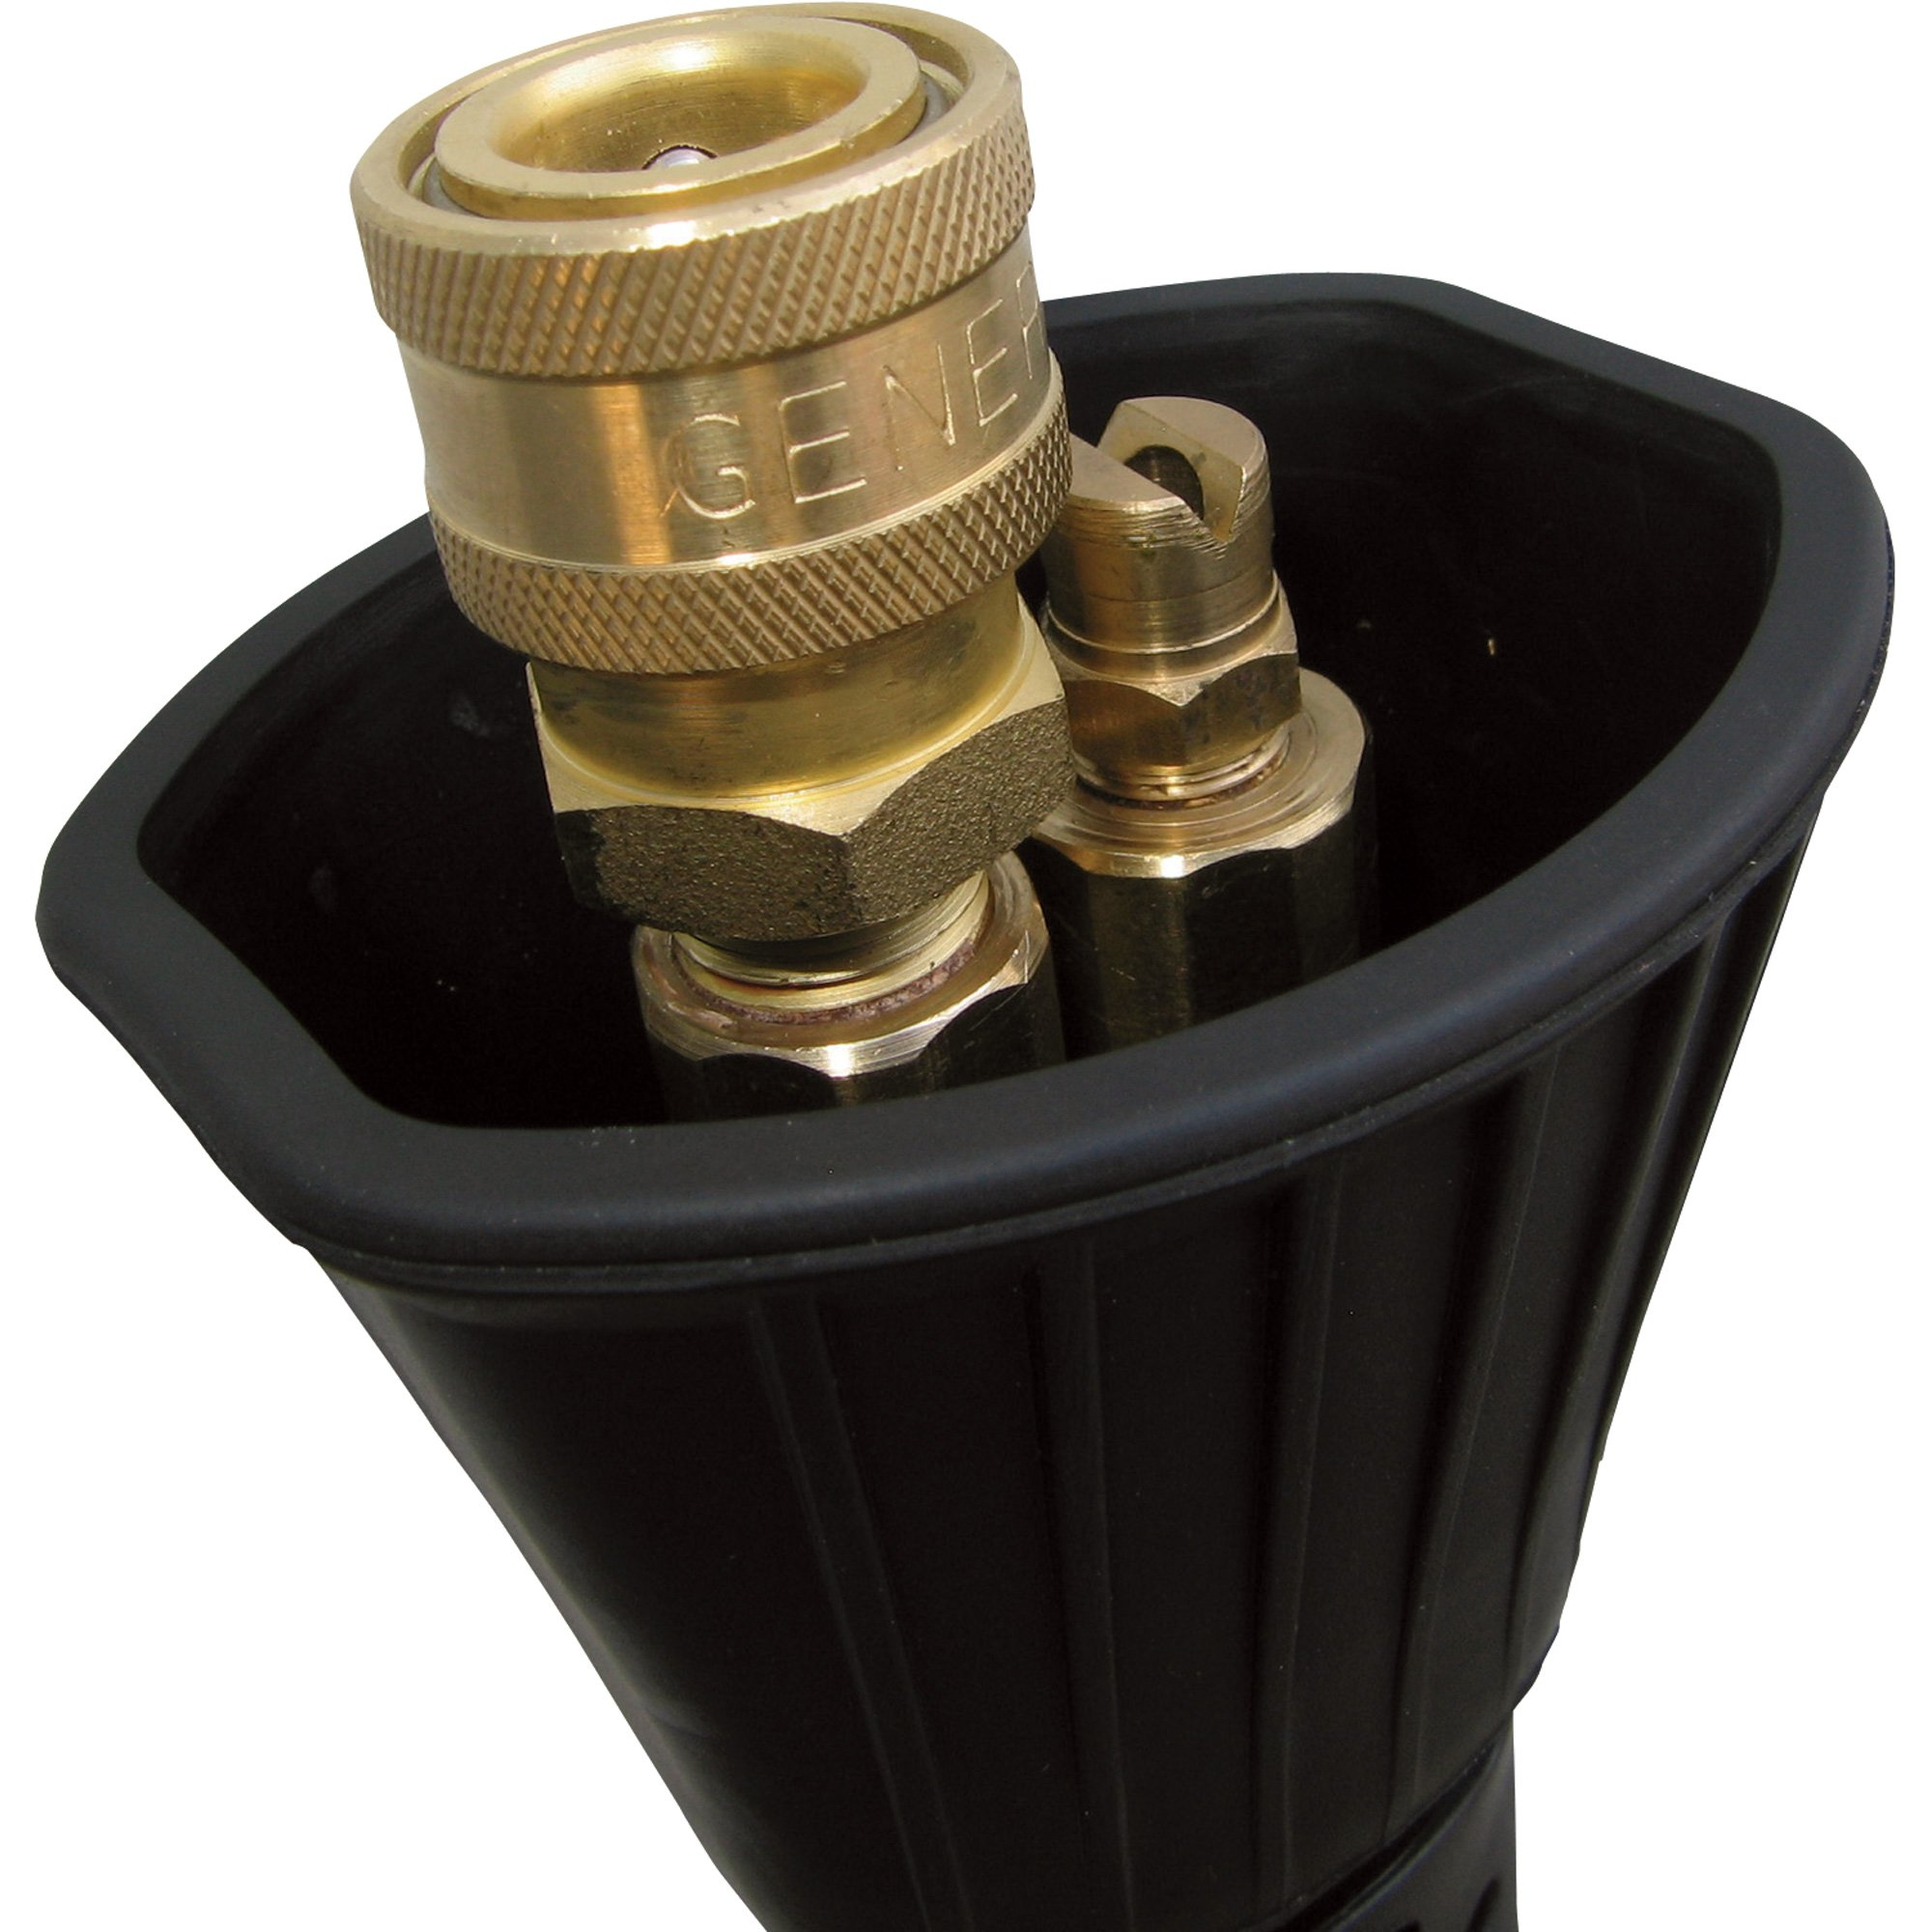 General Pump Hot Water Zinc-Plated Dual Lance - 4000 PSI, 10.5 GPM, 22in.L, Model# 2100232